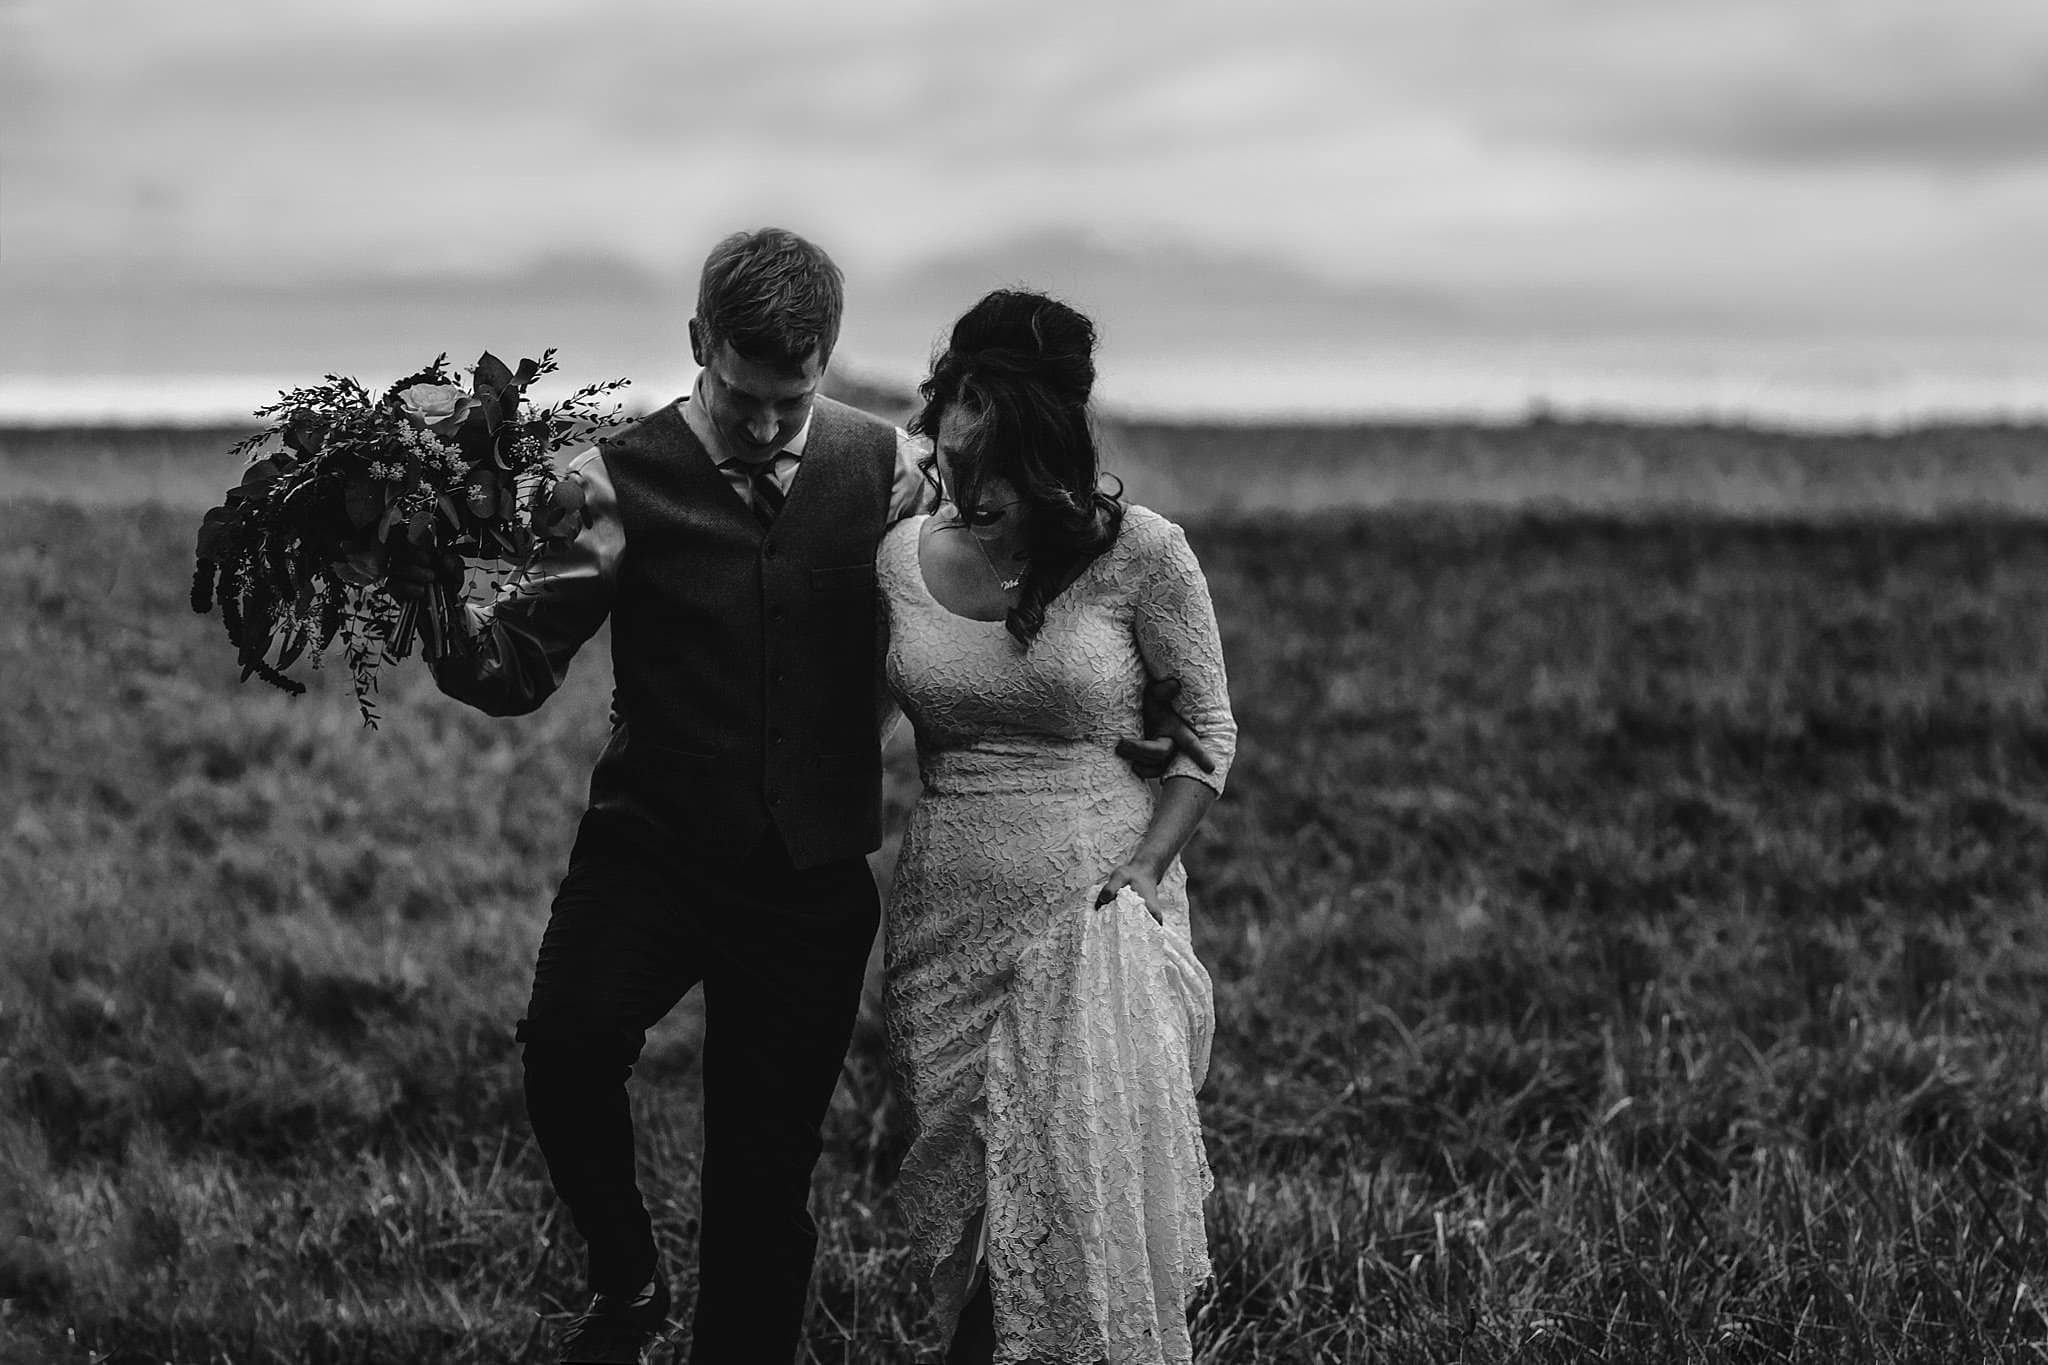 Intimate wedding with romantic vibes and a Boho chic gown, eclectic florals with succulent bouquet and it happened at Nazareth Hall, a Wedding Venue near Toledo Ohio by Ohio Wedding Photographer ME+HIM Photography